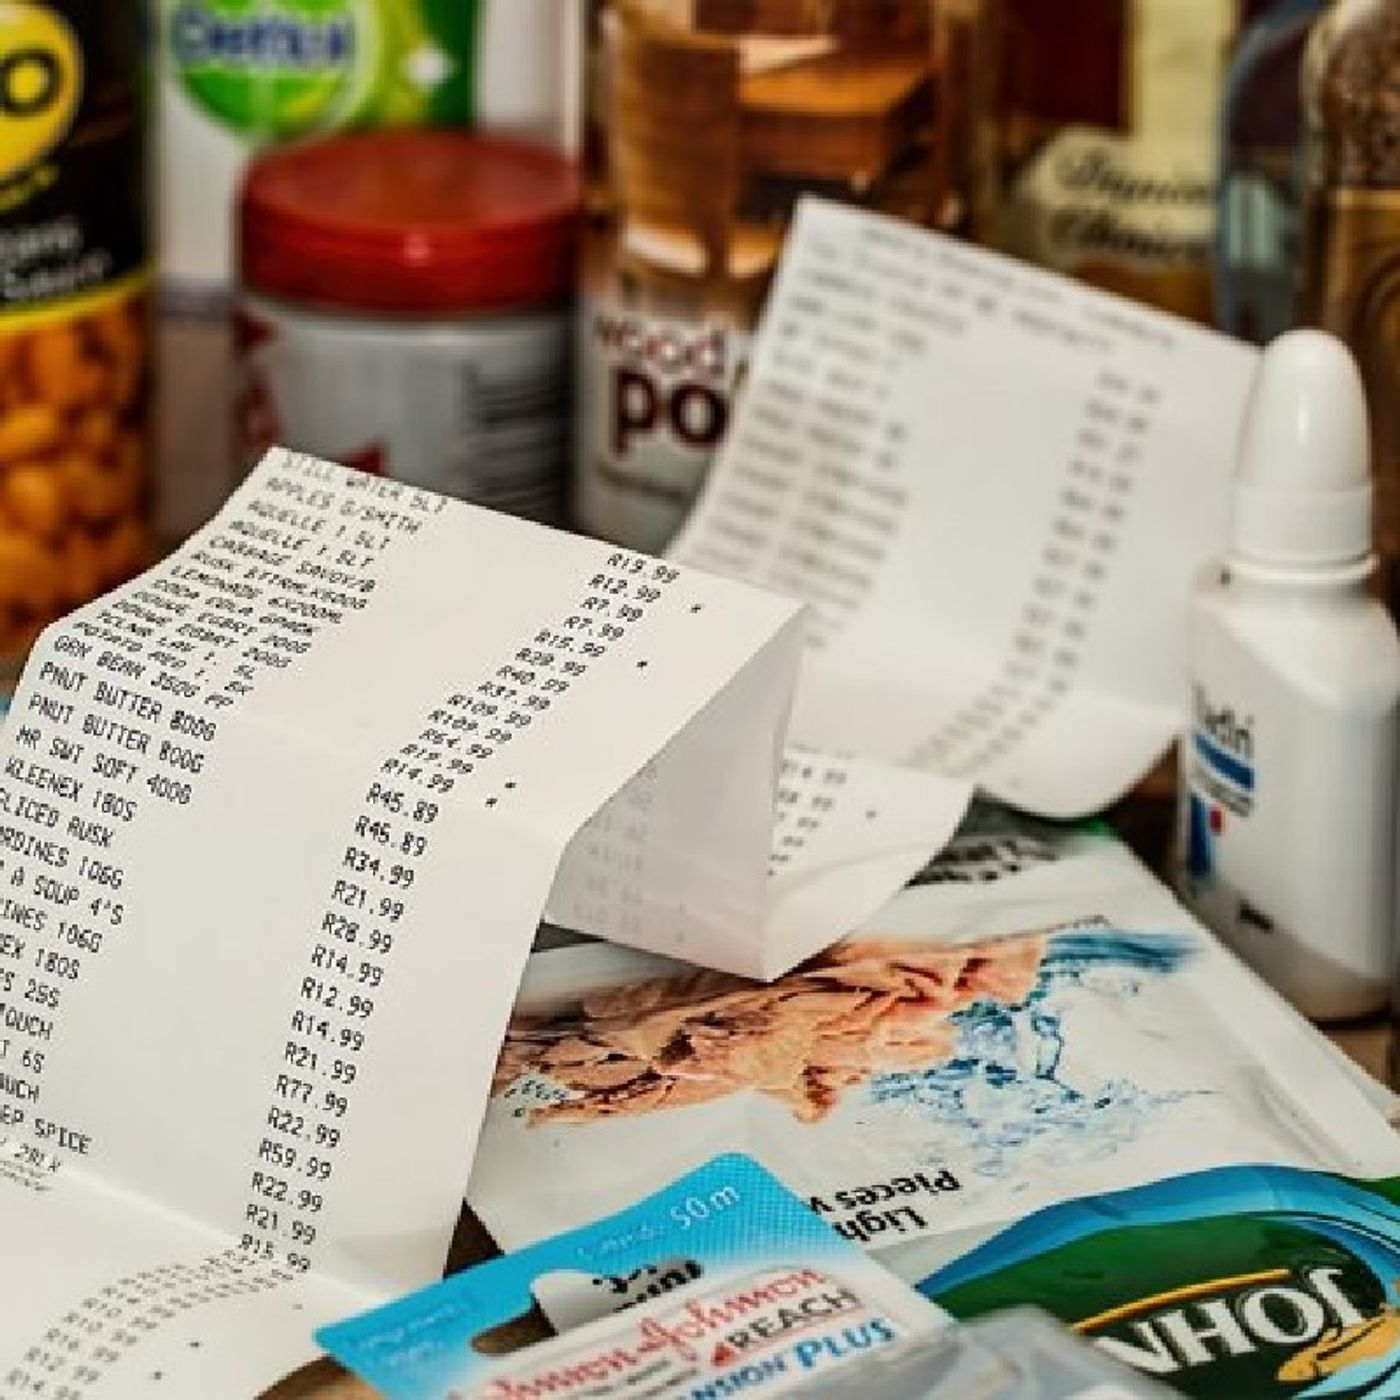 Episode 1381 - Why Are Food Prices Going Up So Rapidly?